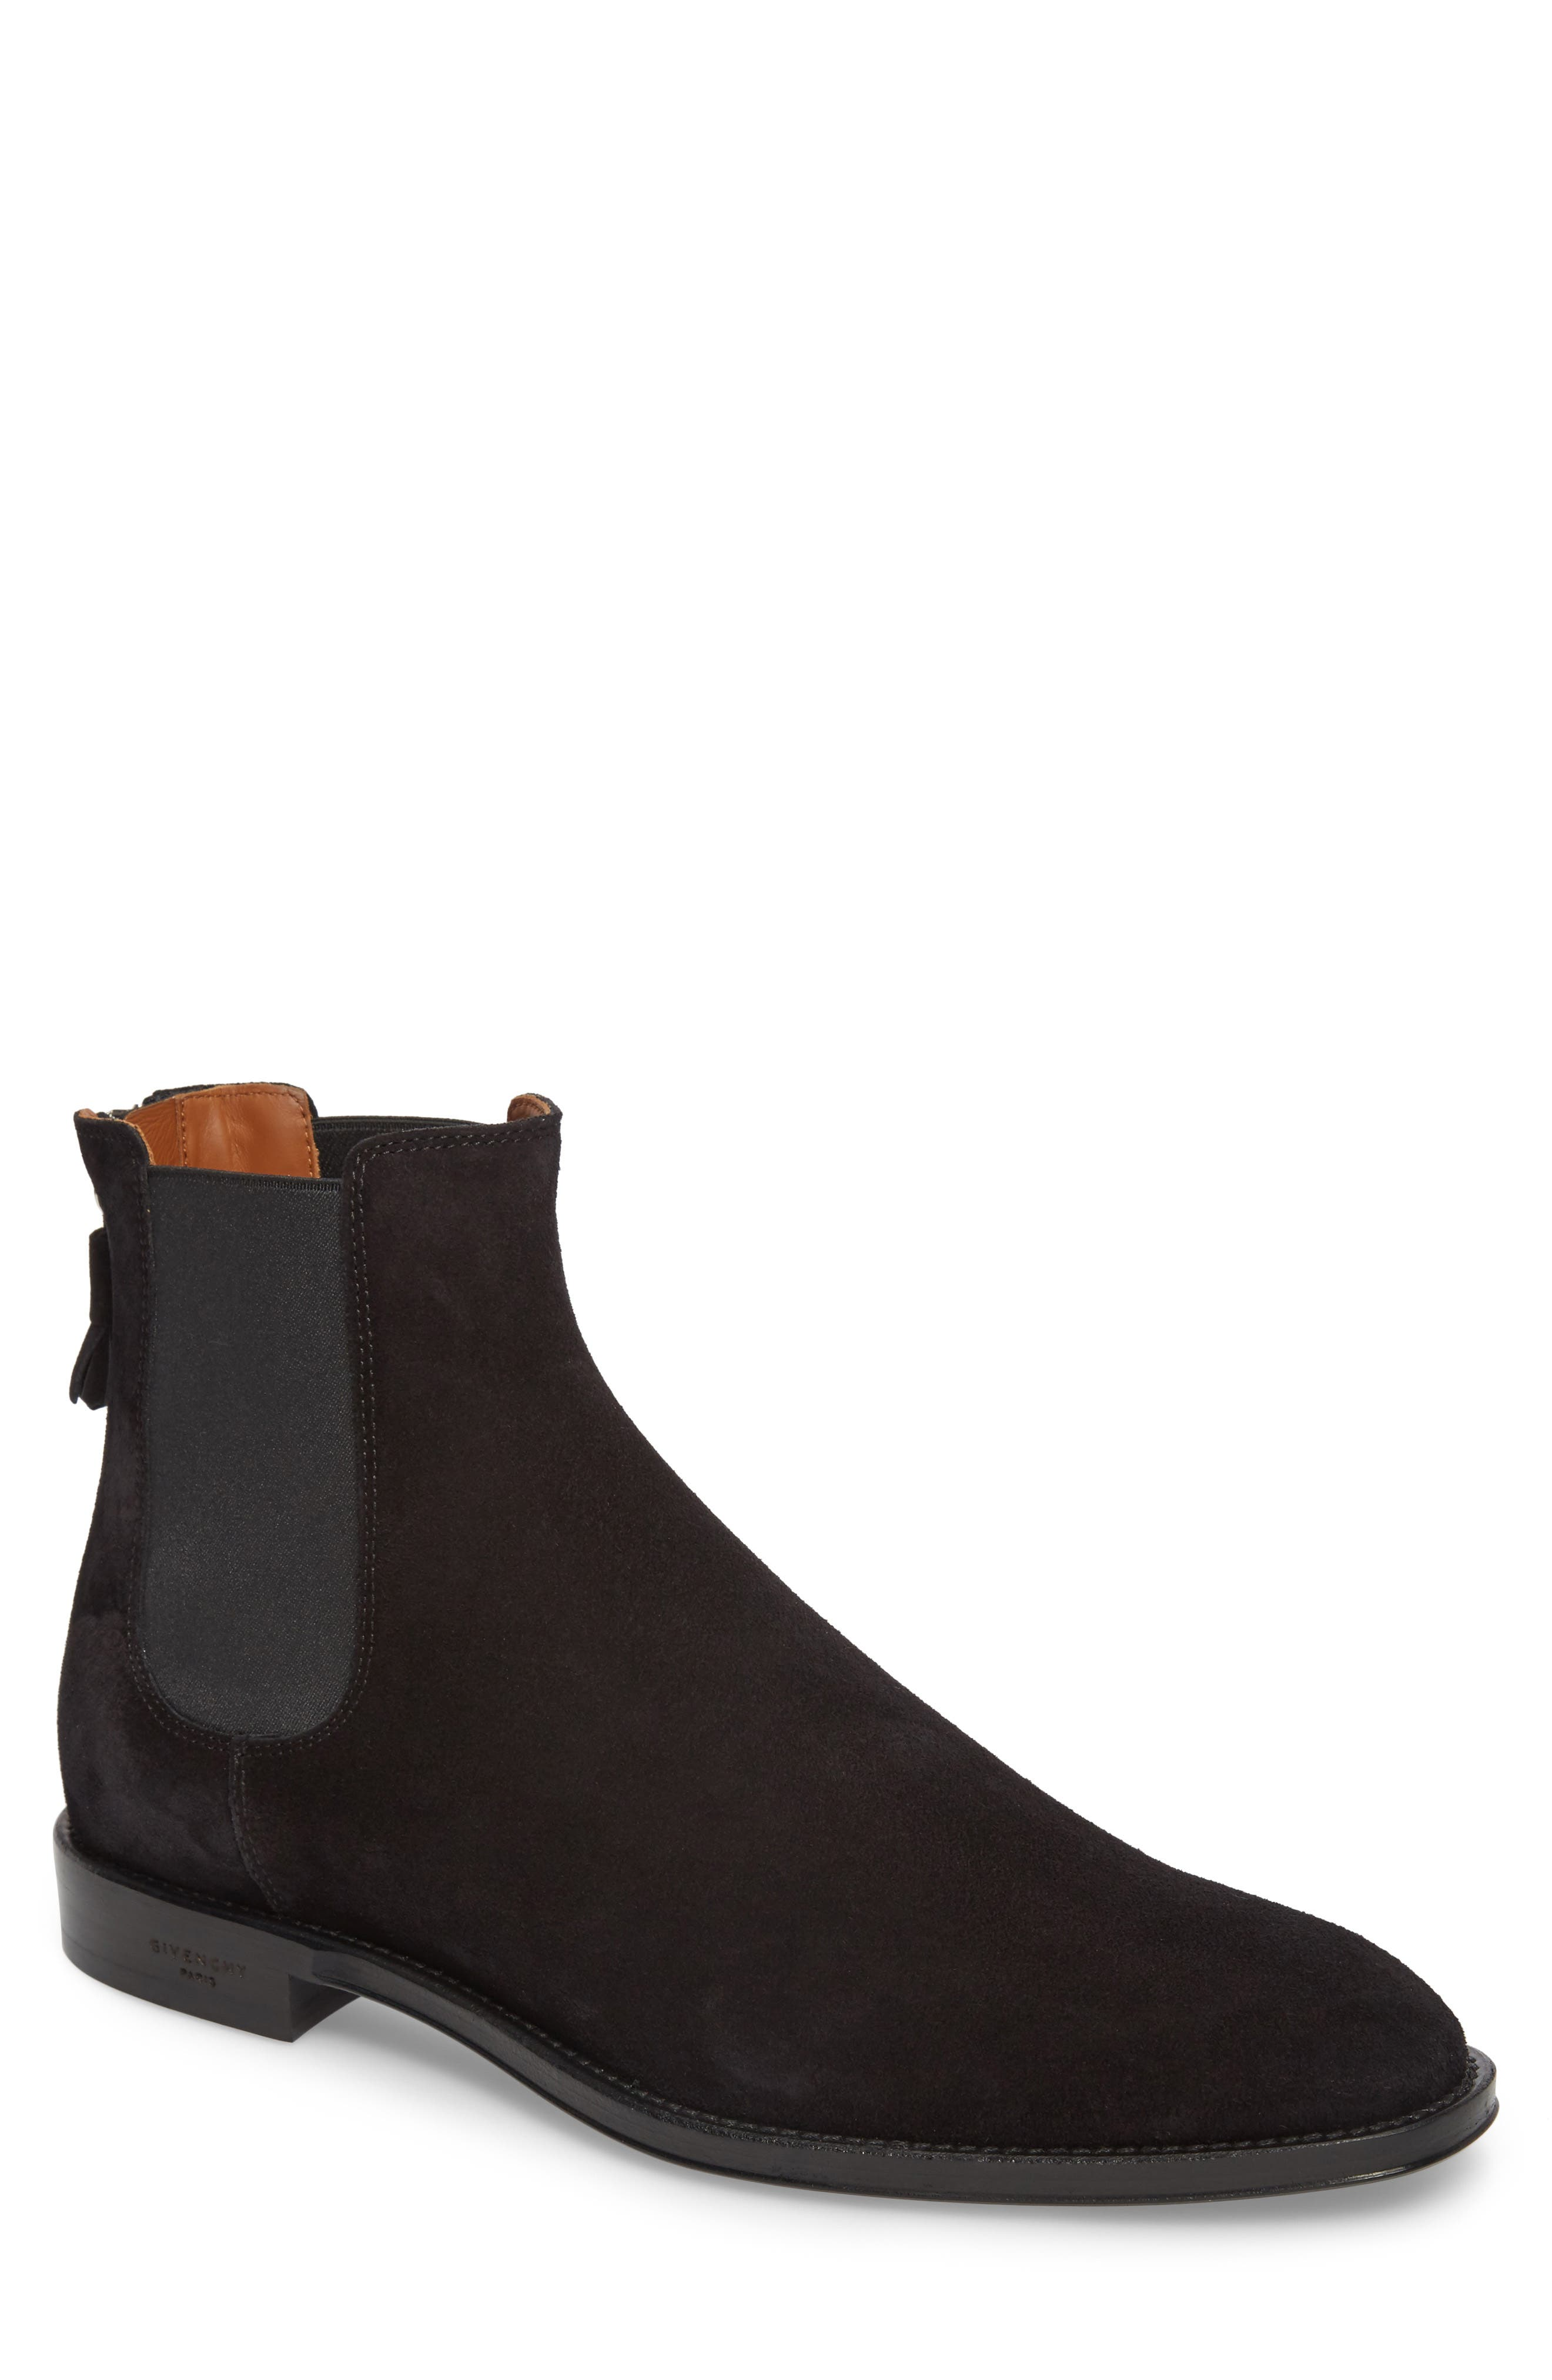 Chelsea Boot,                             Main thumbnail 1, color,                             001